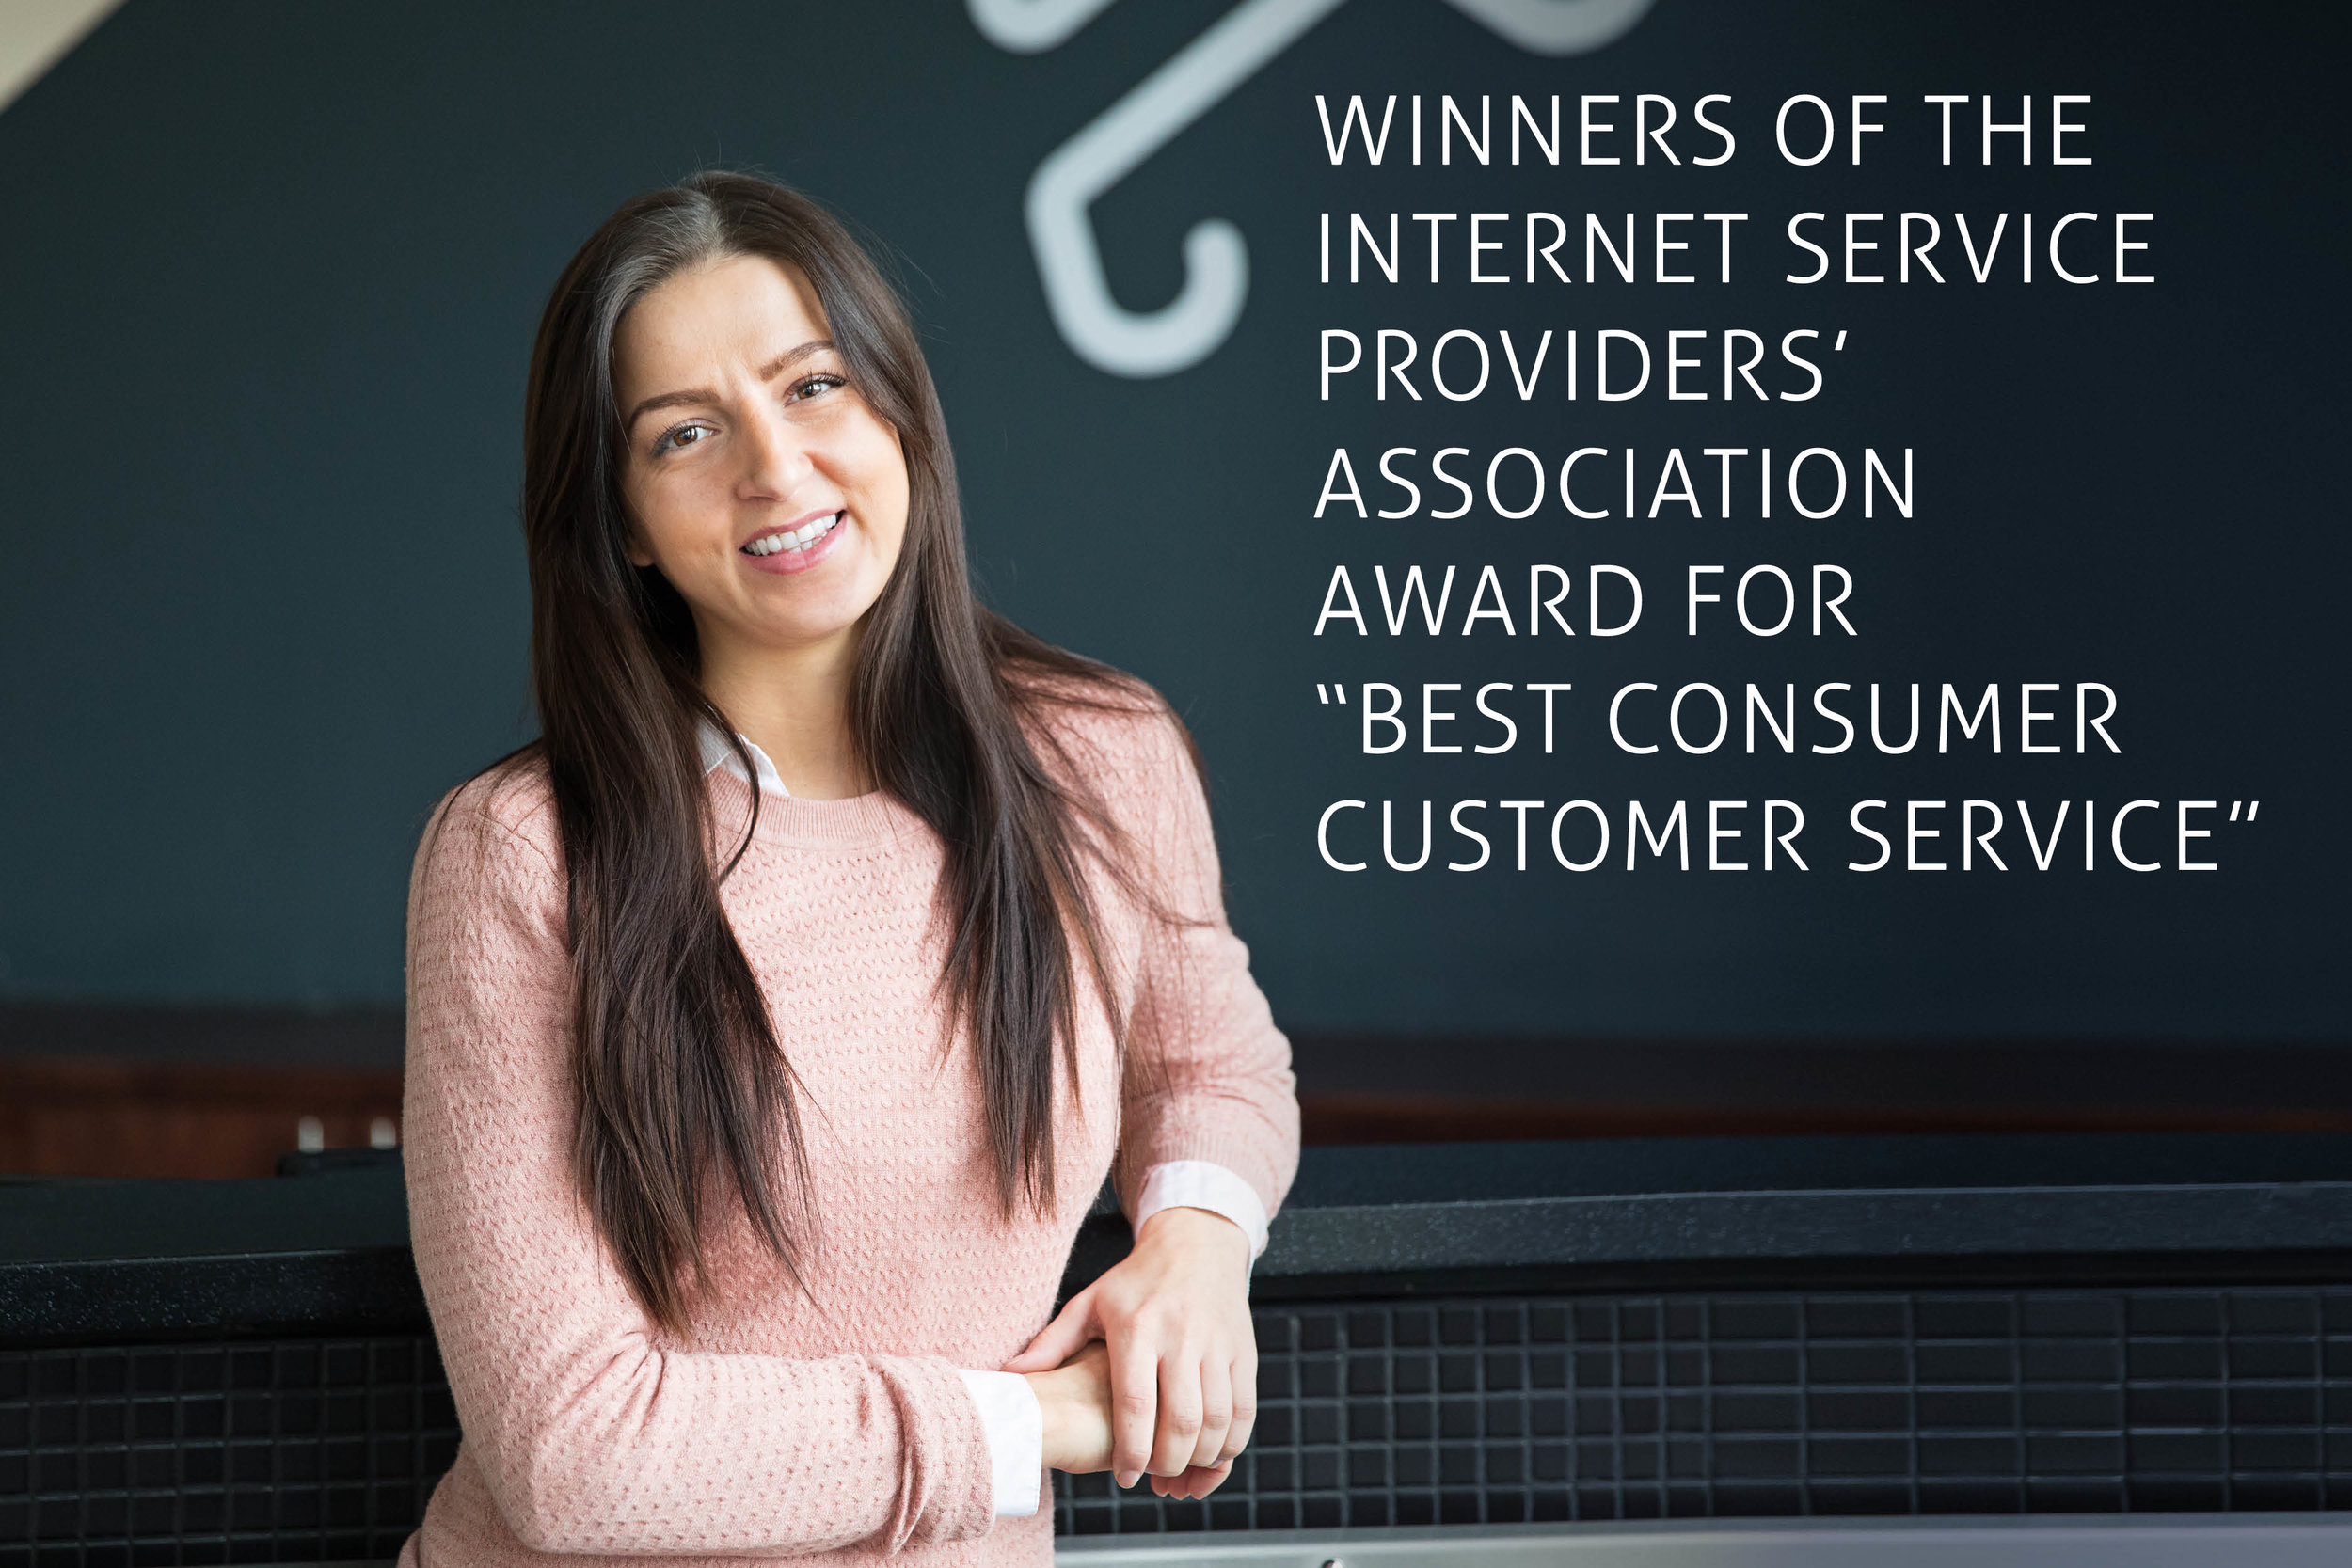 Winners of the Internet Service Providers' Association Award for Best Consumer Customer Service.